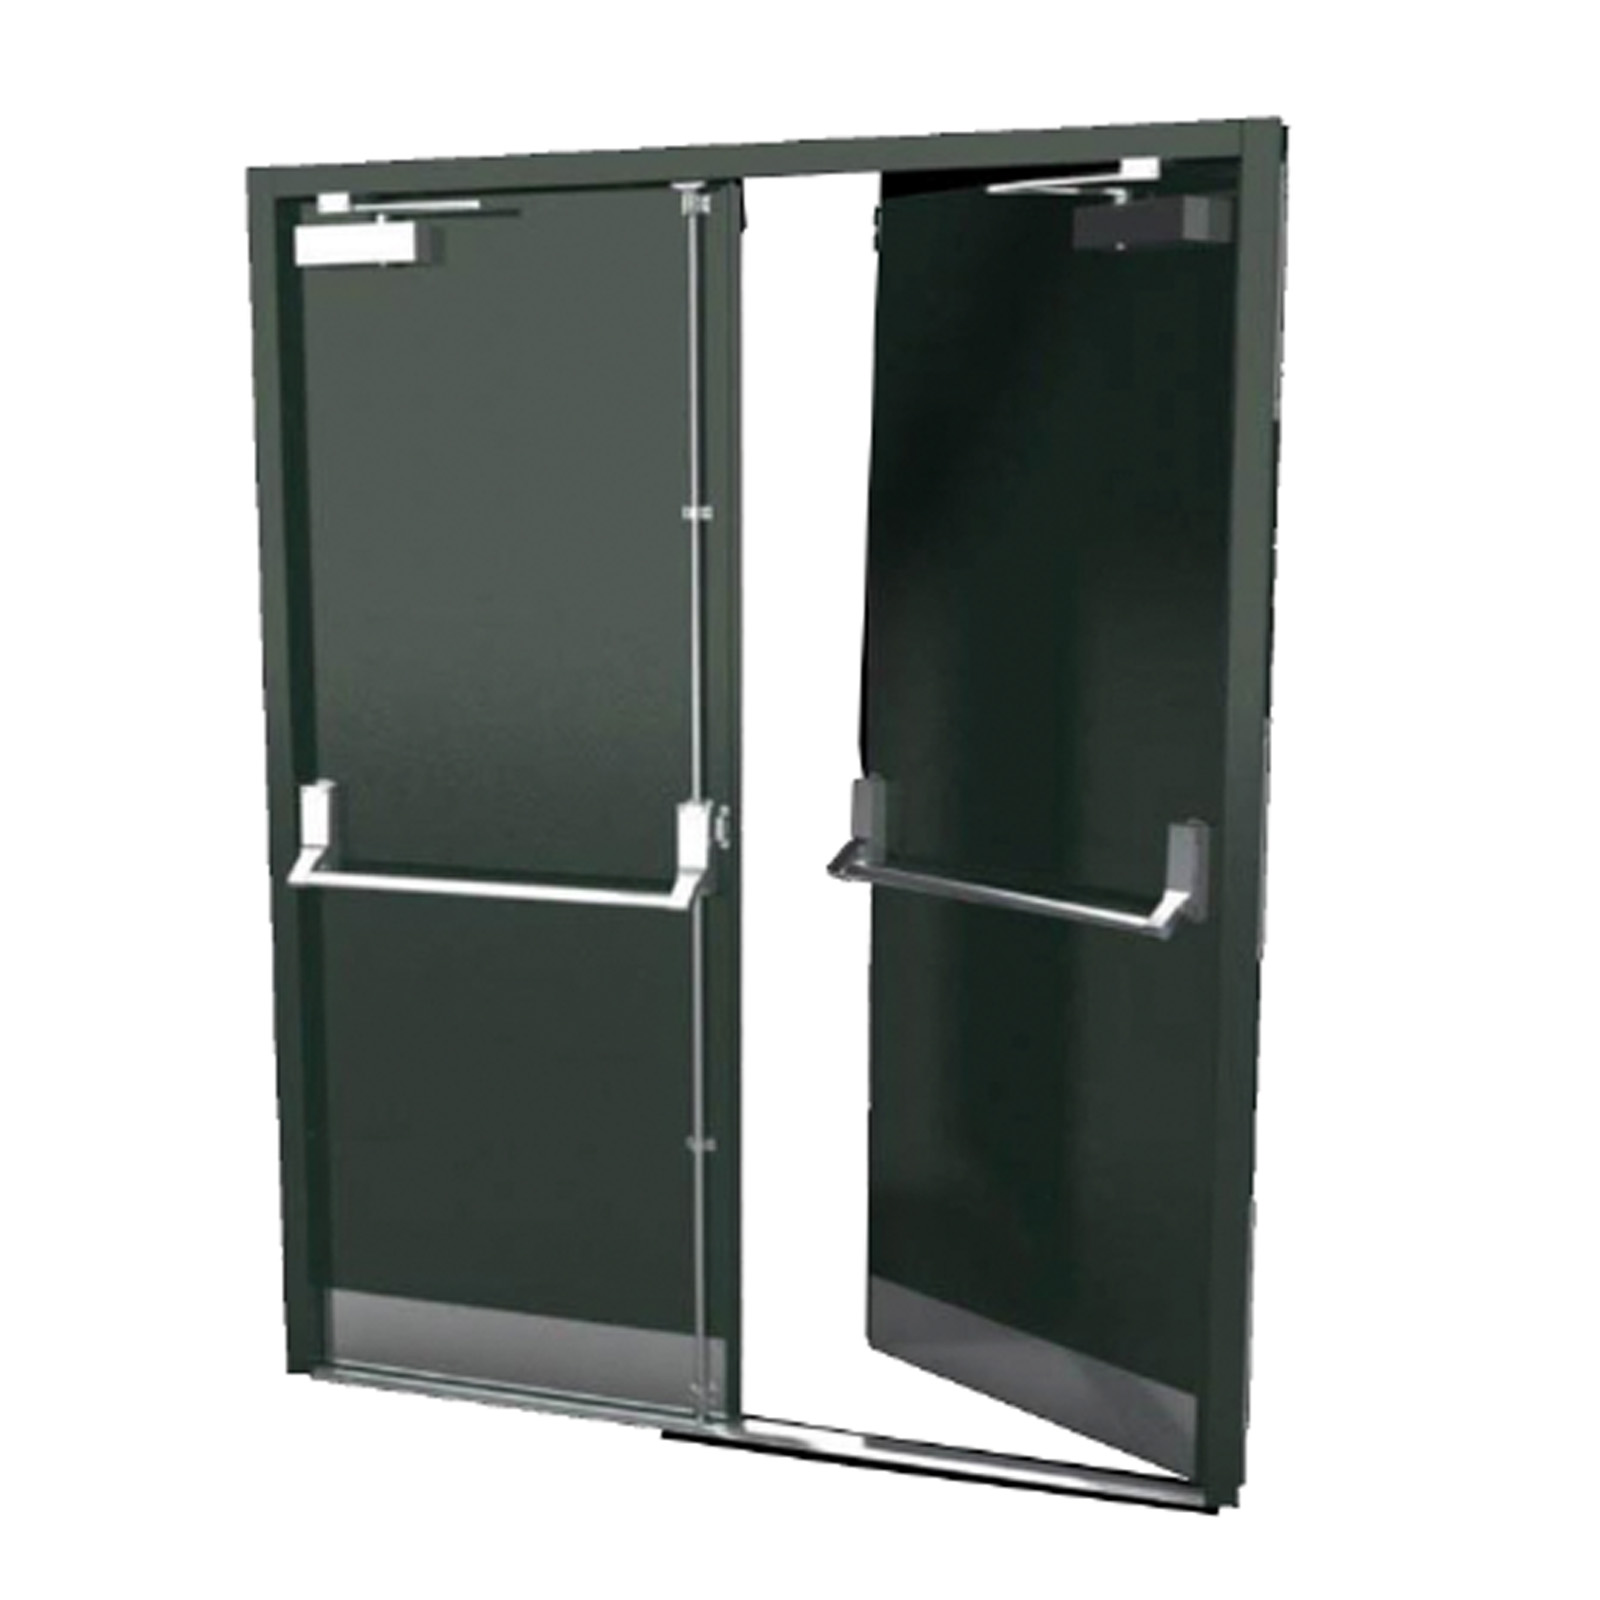 Fire Rated Fire Exit Double Door Latham S Steel Doors